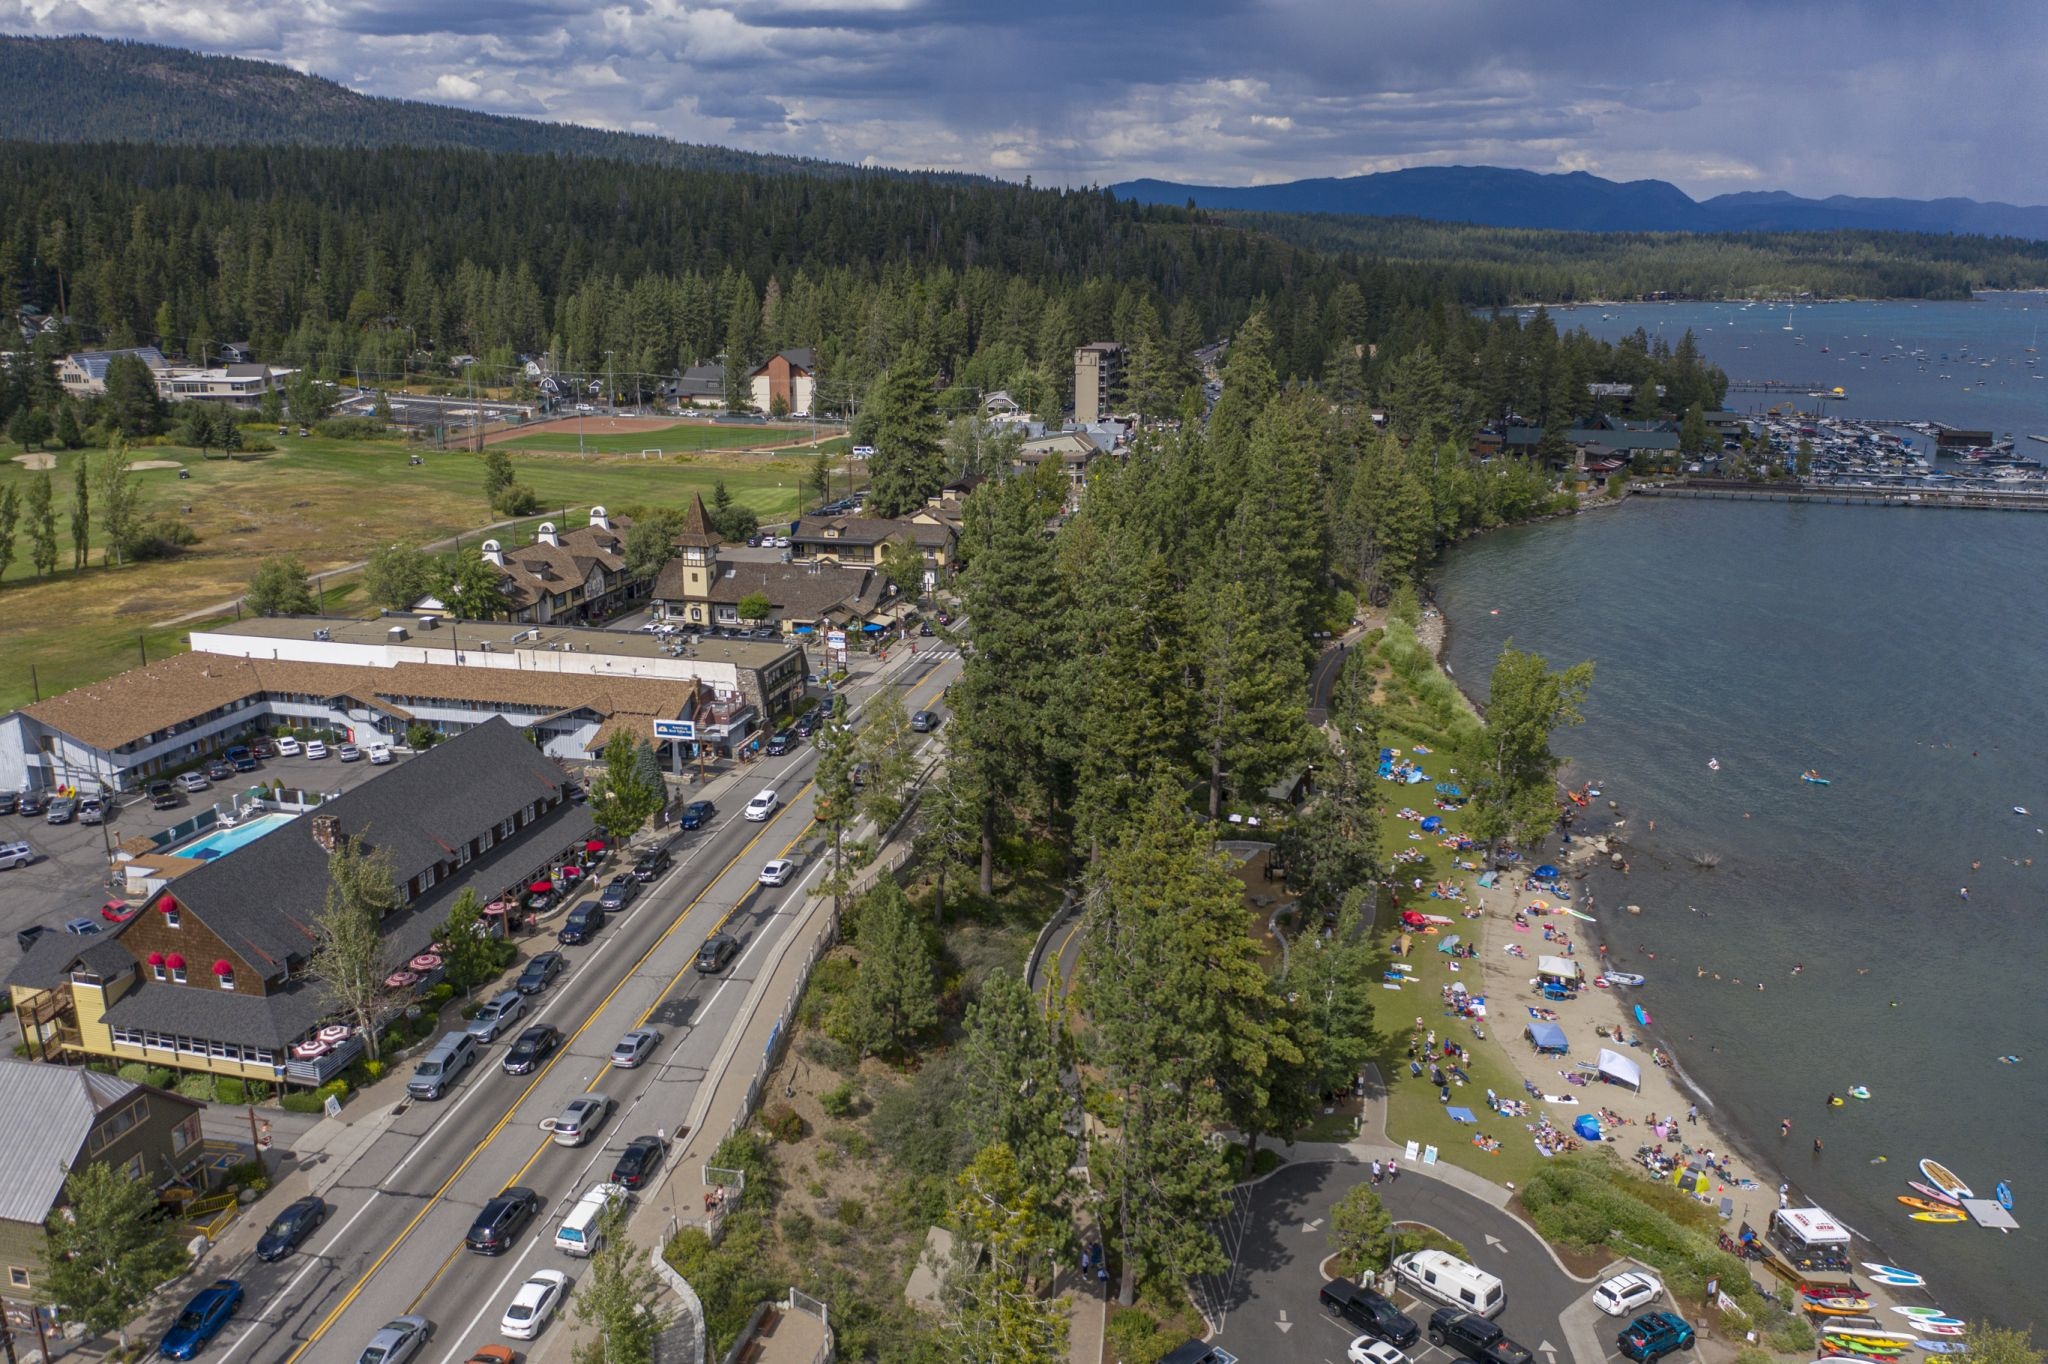 Tahoe residents blame Airbnb, county for nonstop tourism